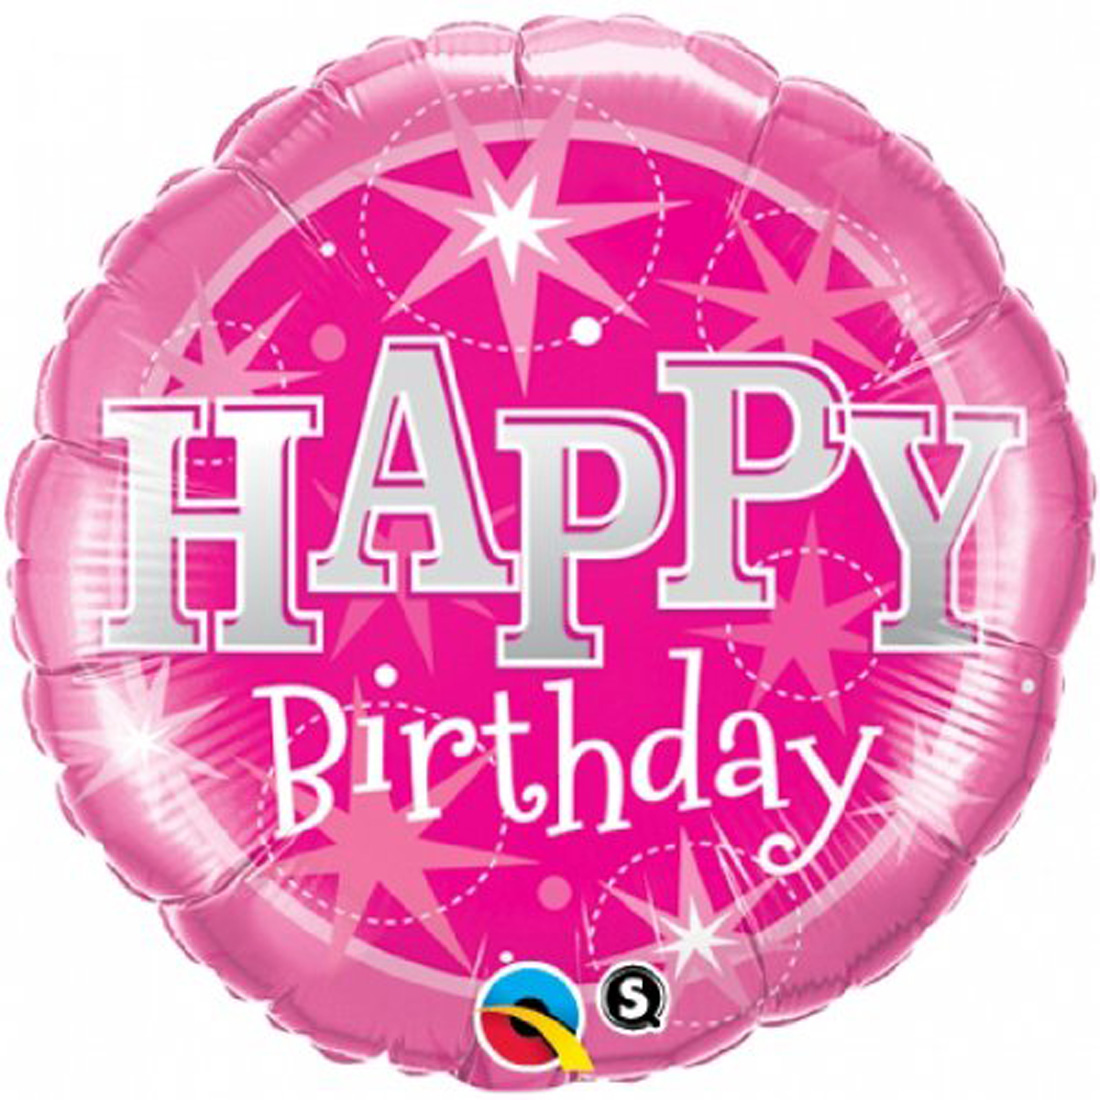 "Happy Birthday Pretty Princess Sparkle Round Supra 18"" Foil Balloon, Pink"